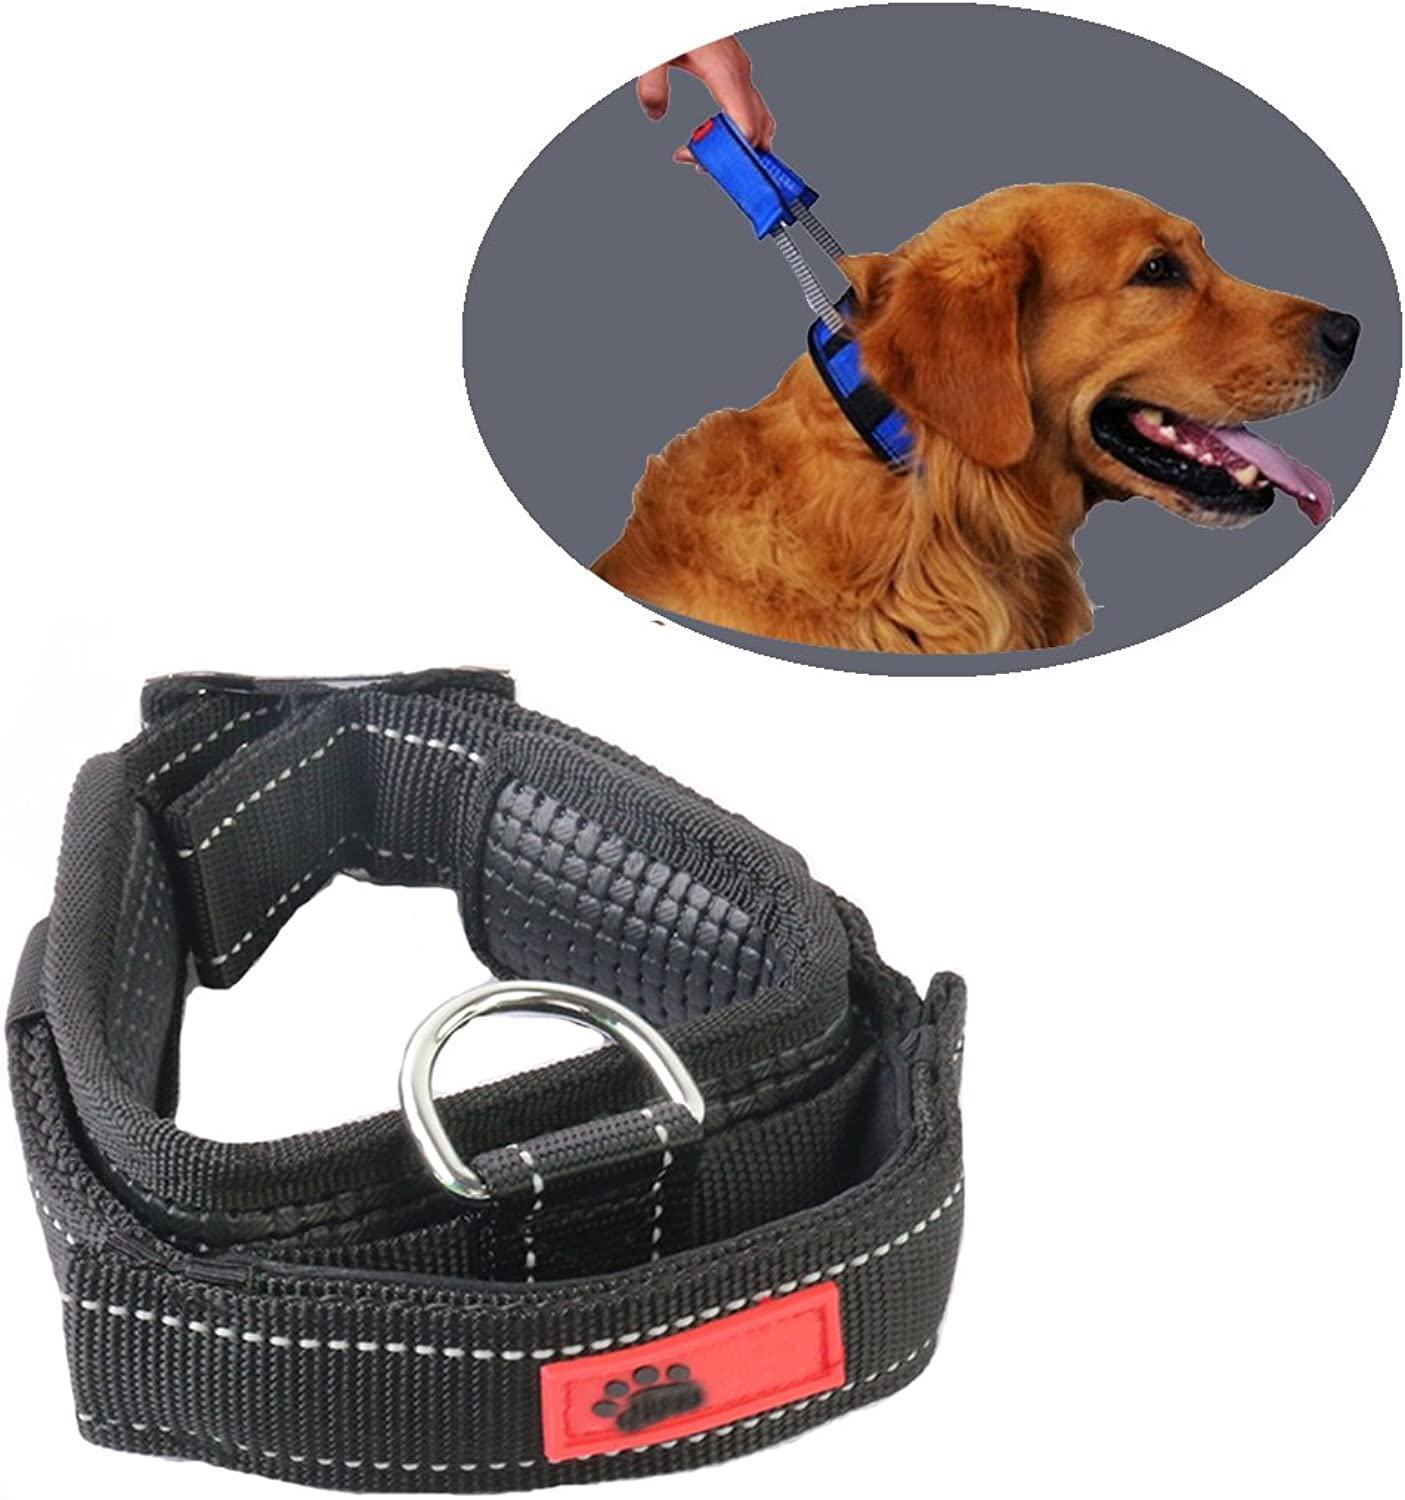 Comfort Padded Dog Collar by Schnappy,Nylon Webbing Pet Sports Dog Tag Collar with Convenient Retractable Leash for Walking (M, Black)